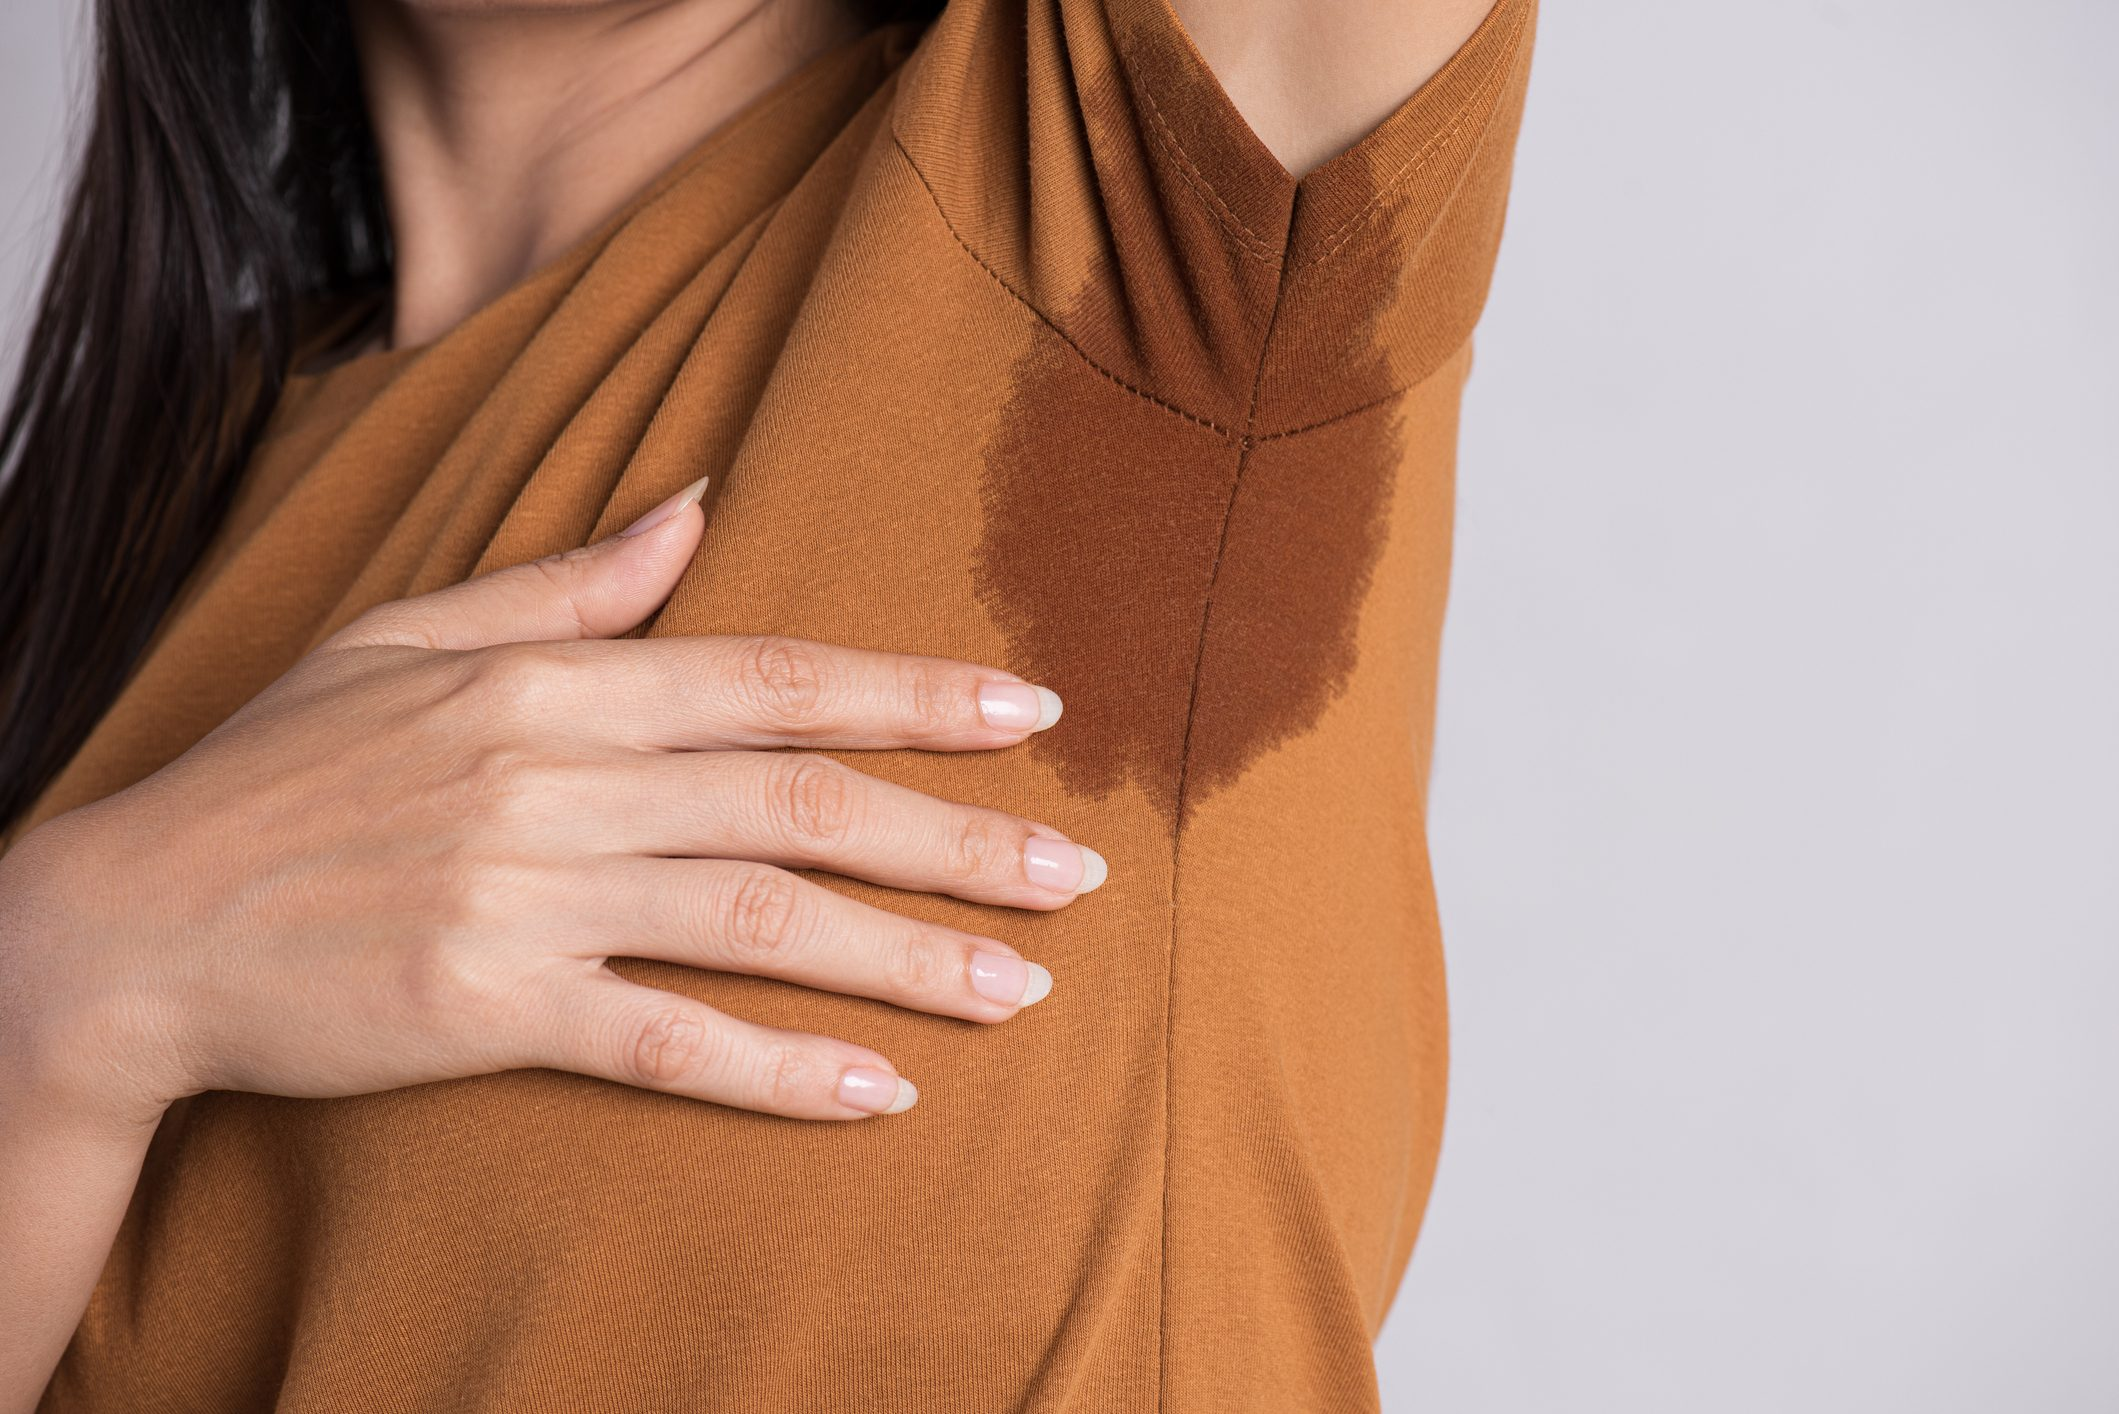 close up of woman's underarm sweat